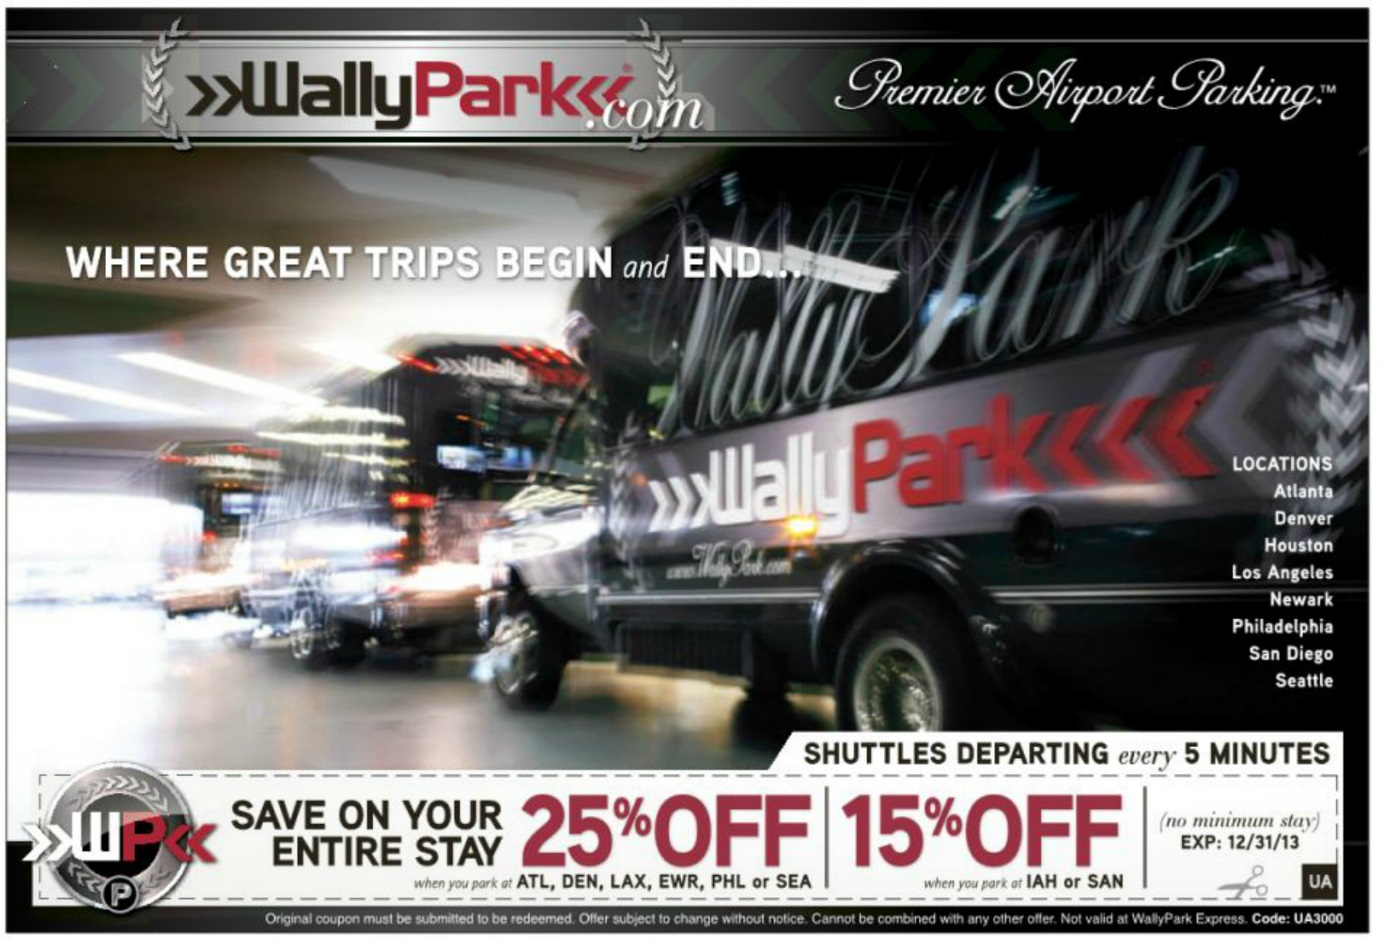 Bolt parking coupon code